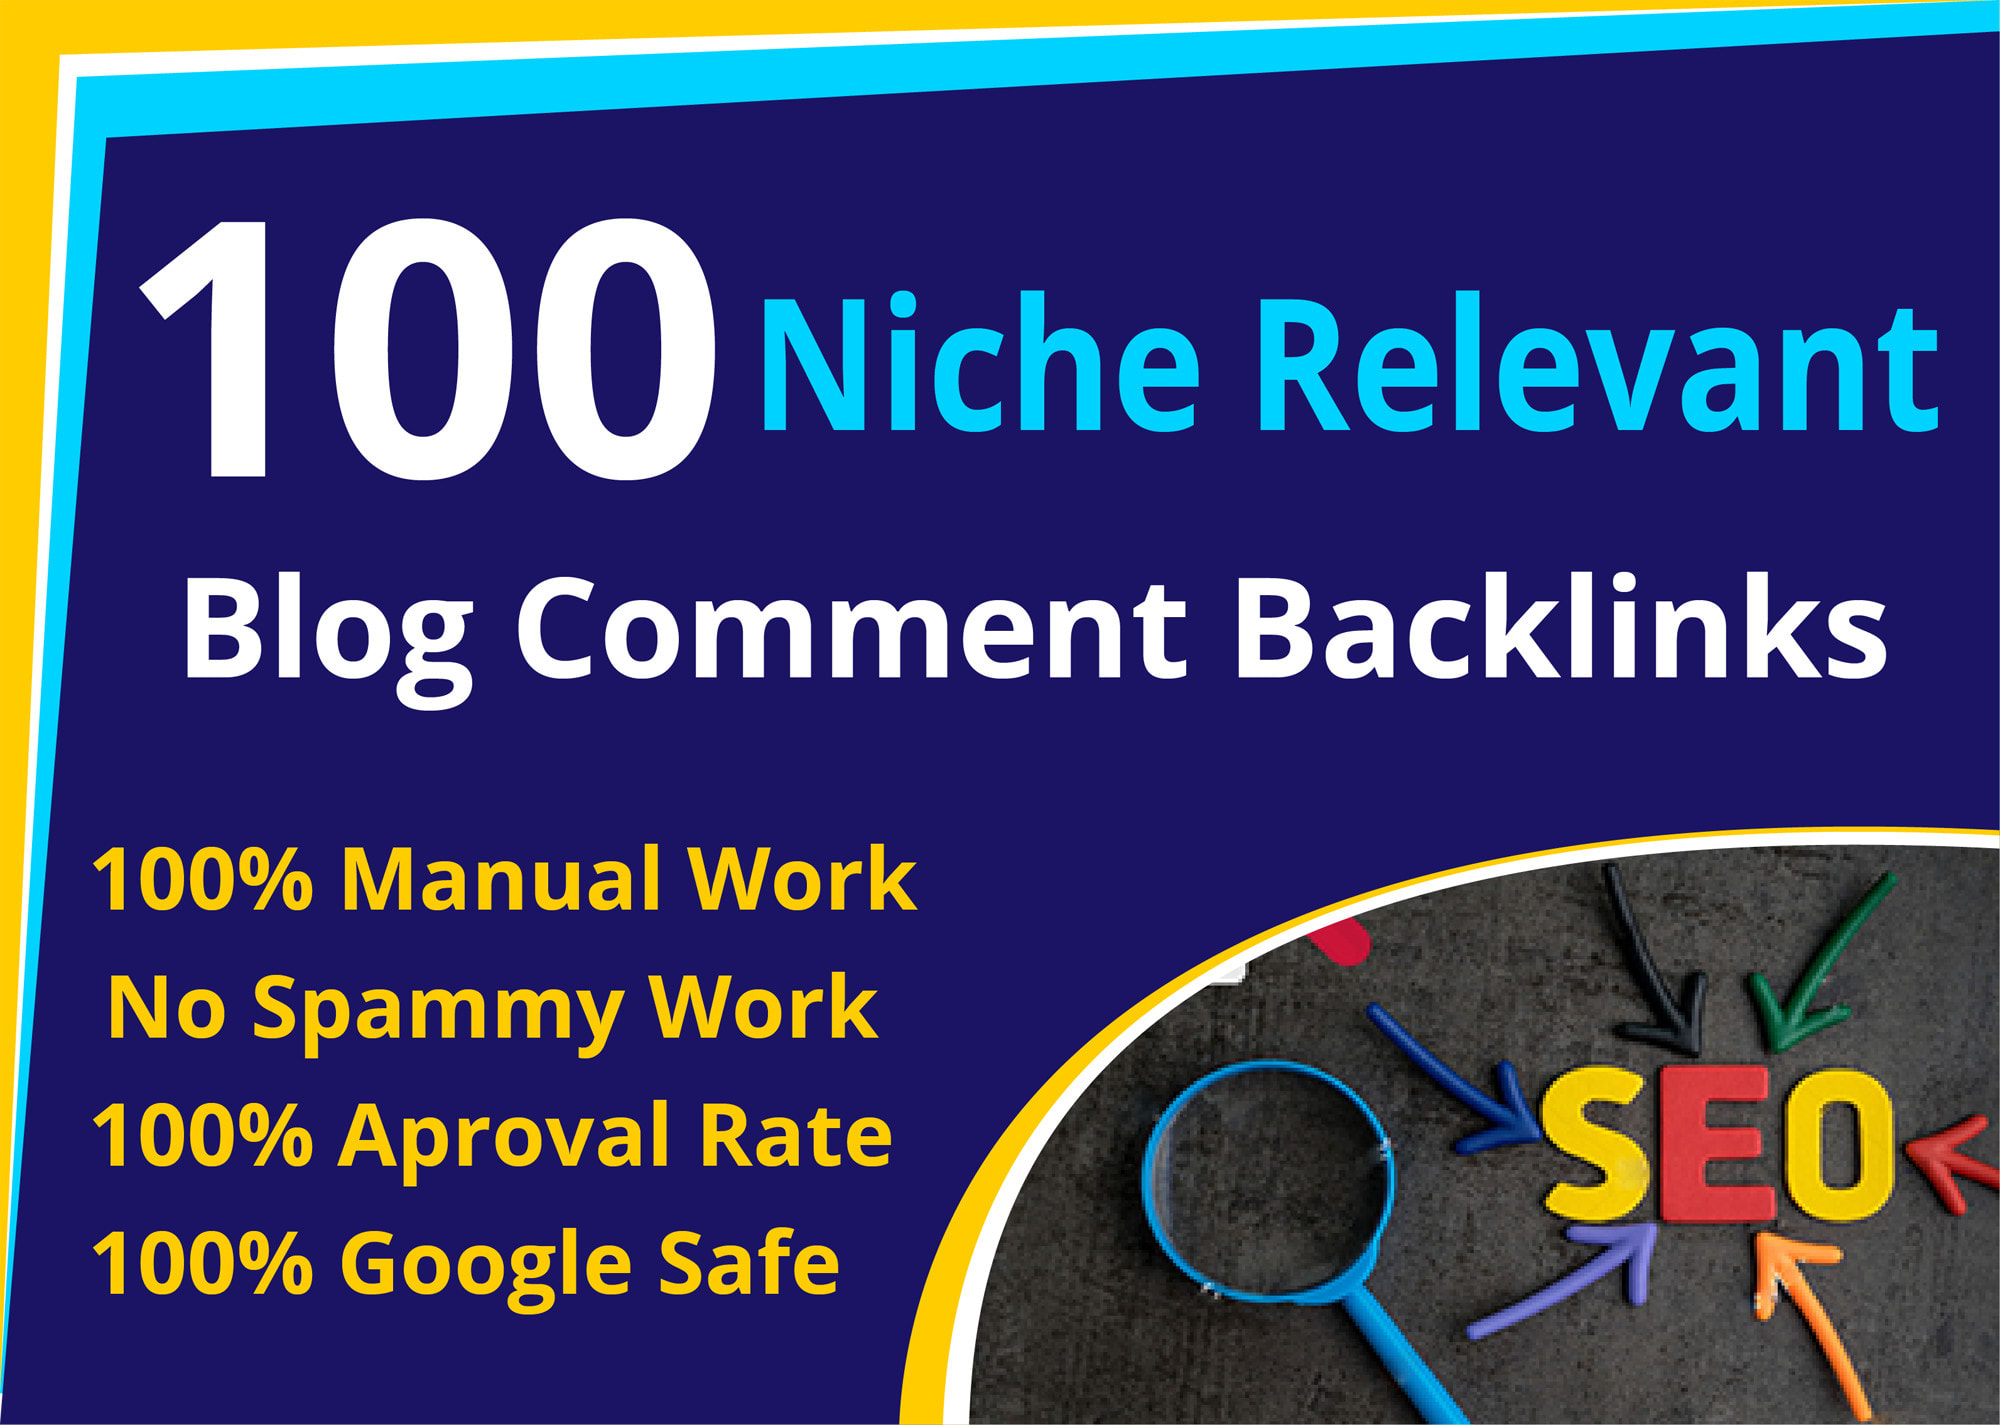 i will a provide 100 niche relevant blog commment backlinks